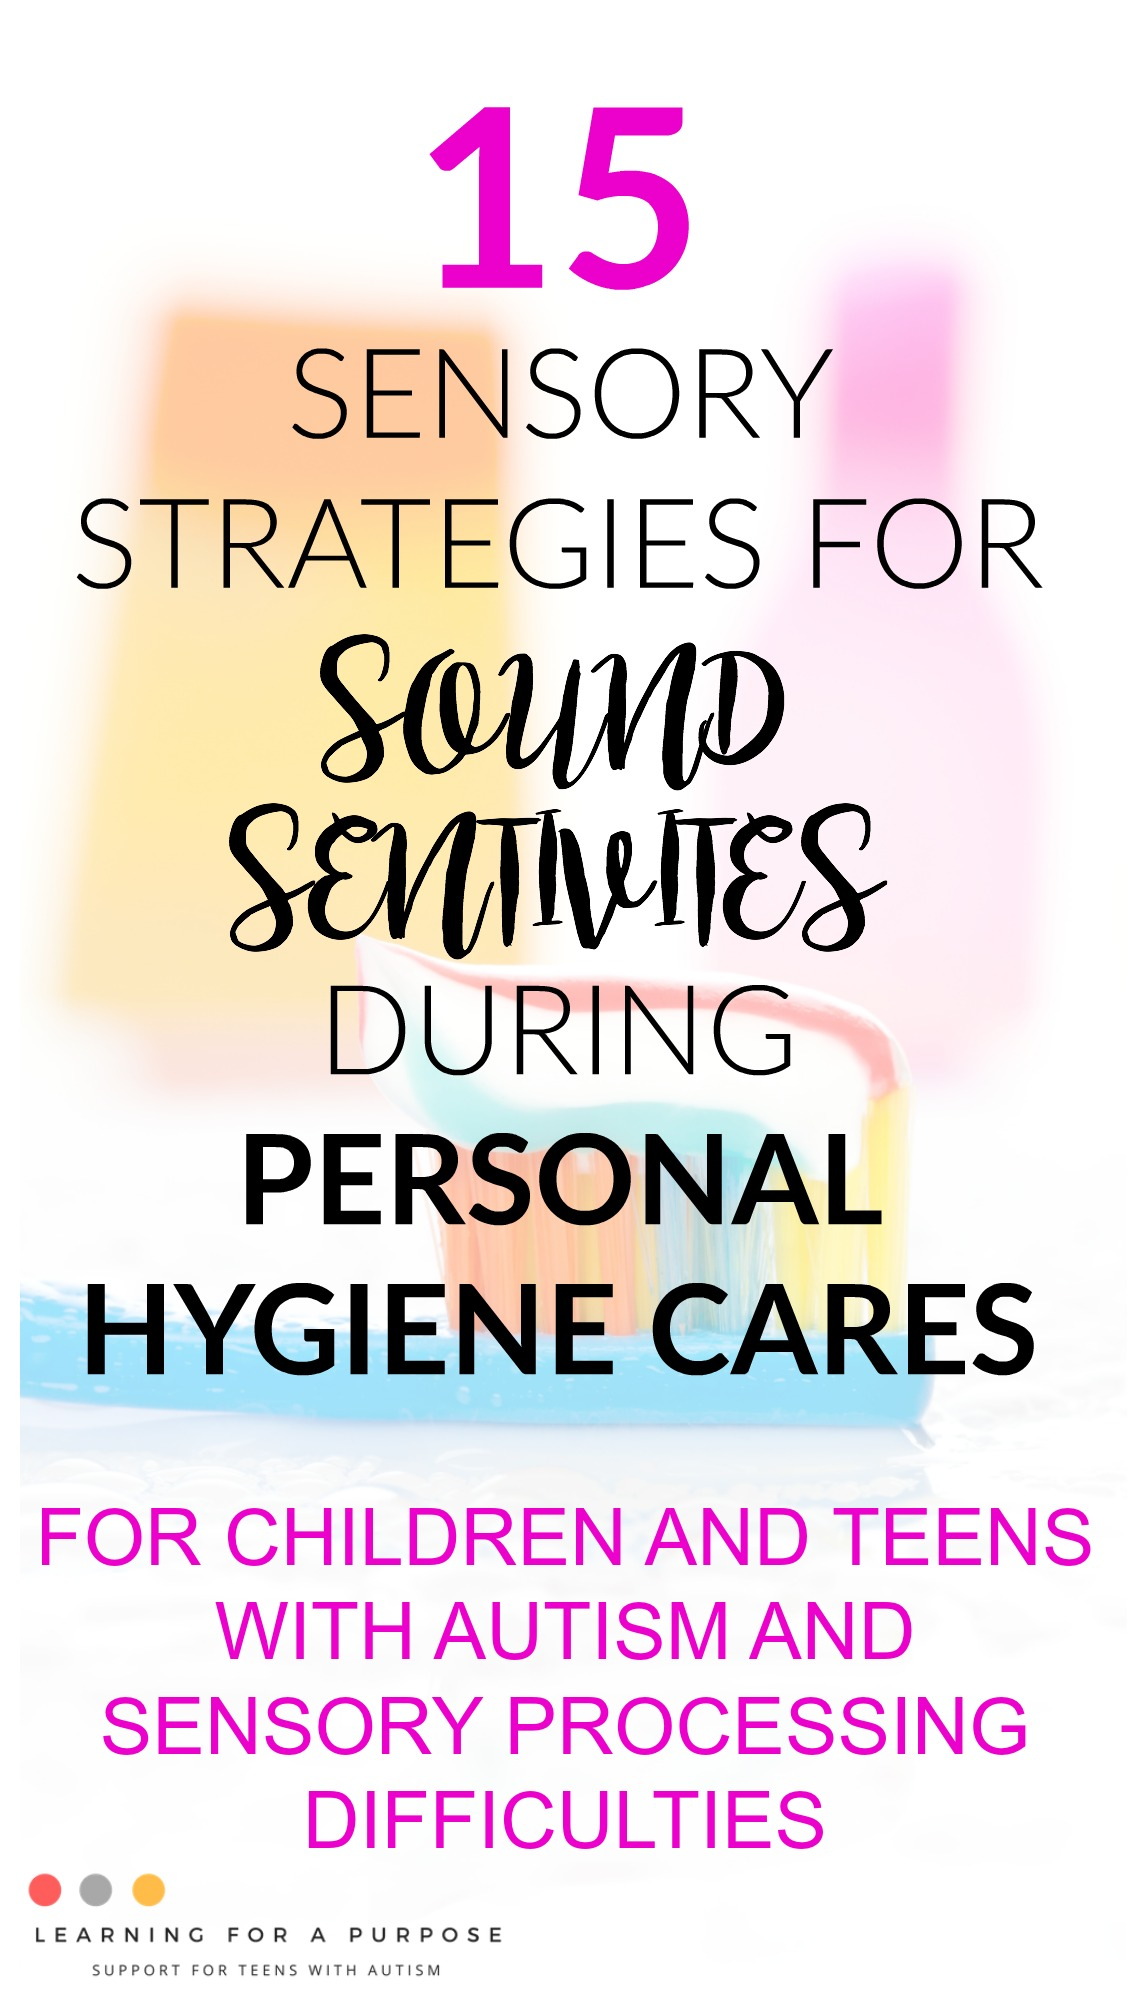 15 Sensory Strategies For Sound Sensitivities During Personal Hygiene Cares